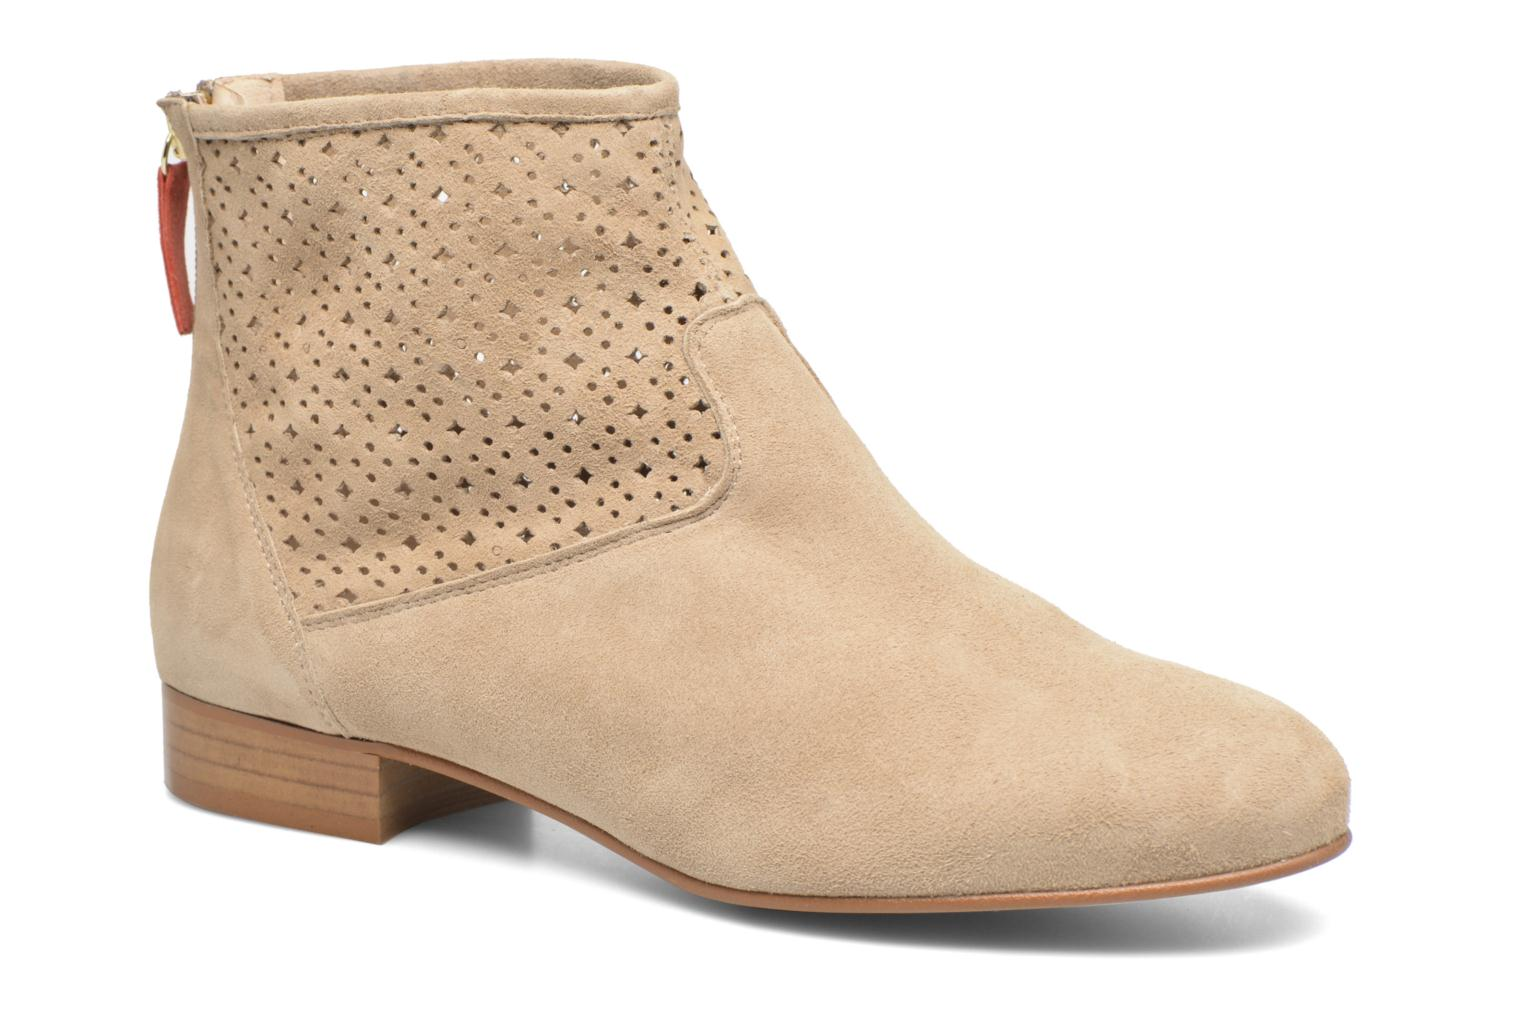 Marques Chaussure femme HE Spring femme Pila Suède taupe